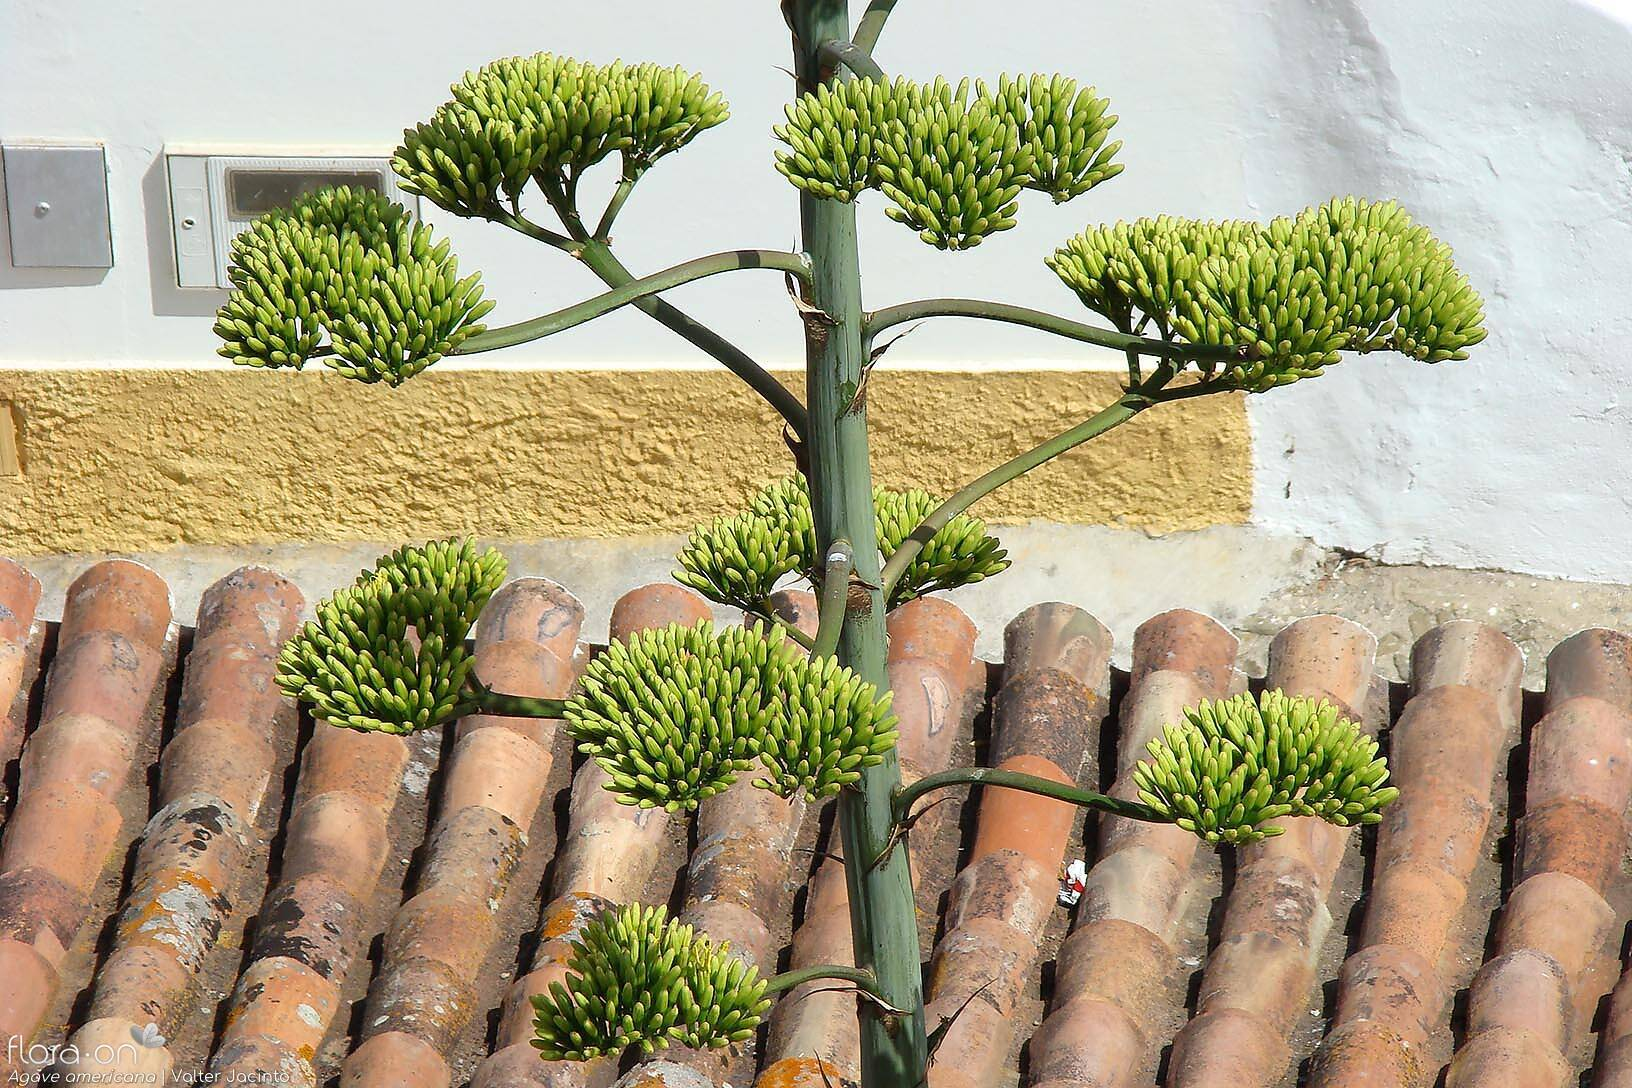 Agave americana - Flor (geral) | Valter Jacinto; CC BY-NC 4.0